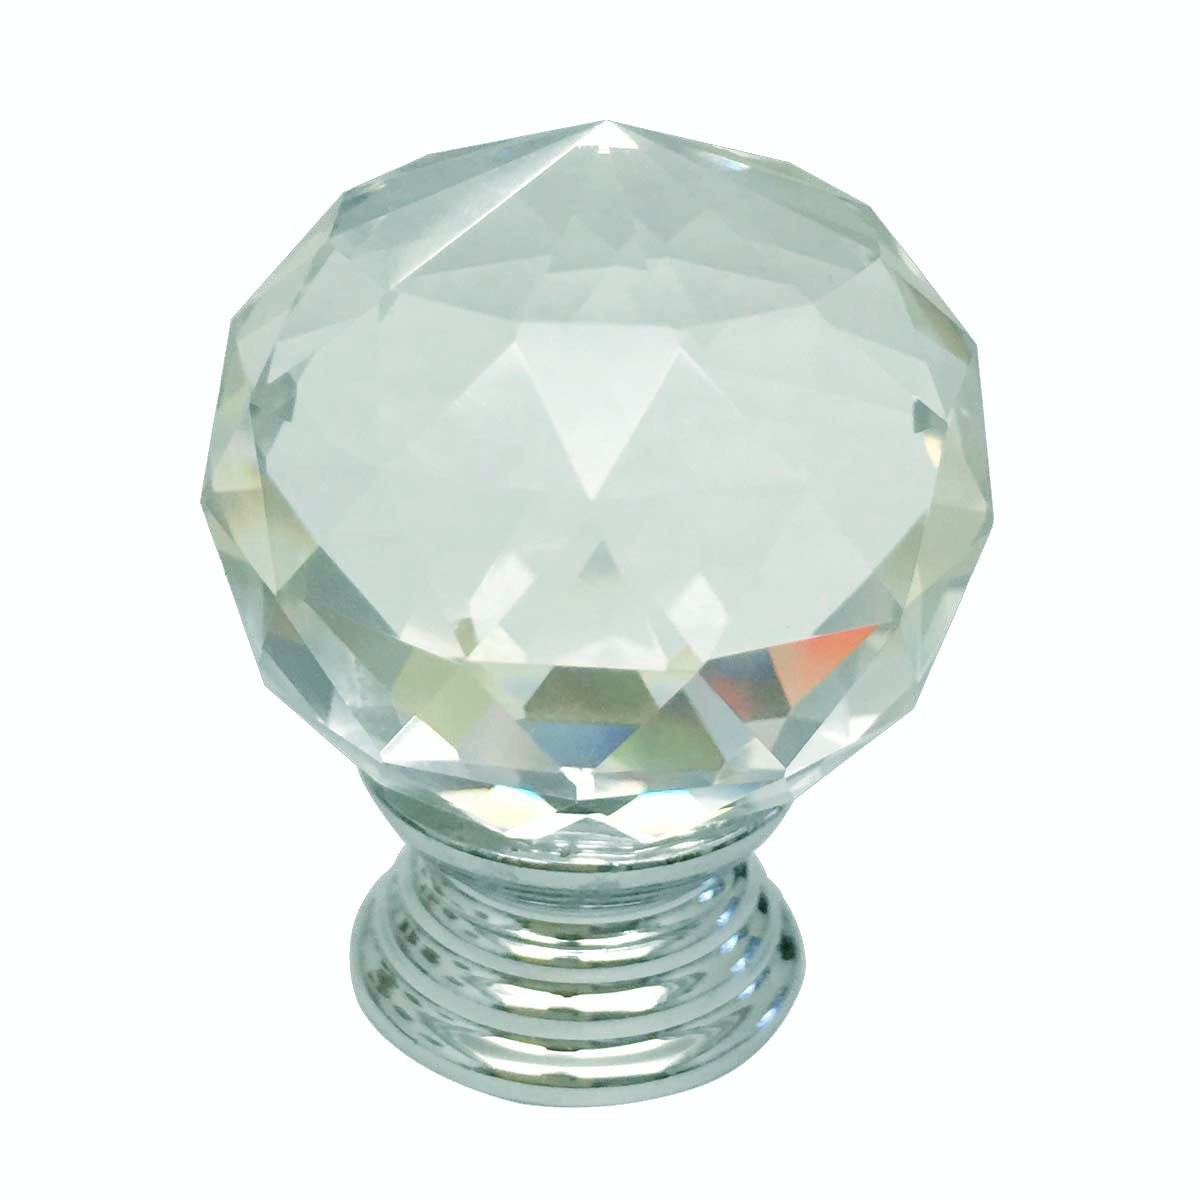 Clear Glass Cabinet Knobs 30mm Round, 1.5 inch projection 20 pcs Cabinet knobs Clear glass Round